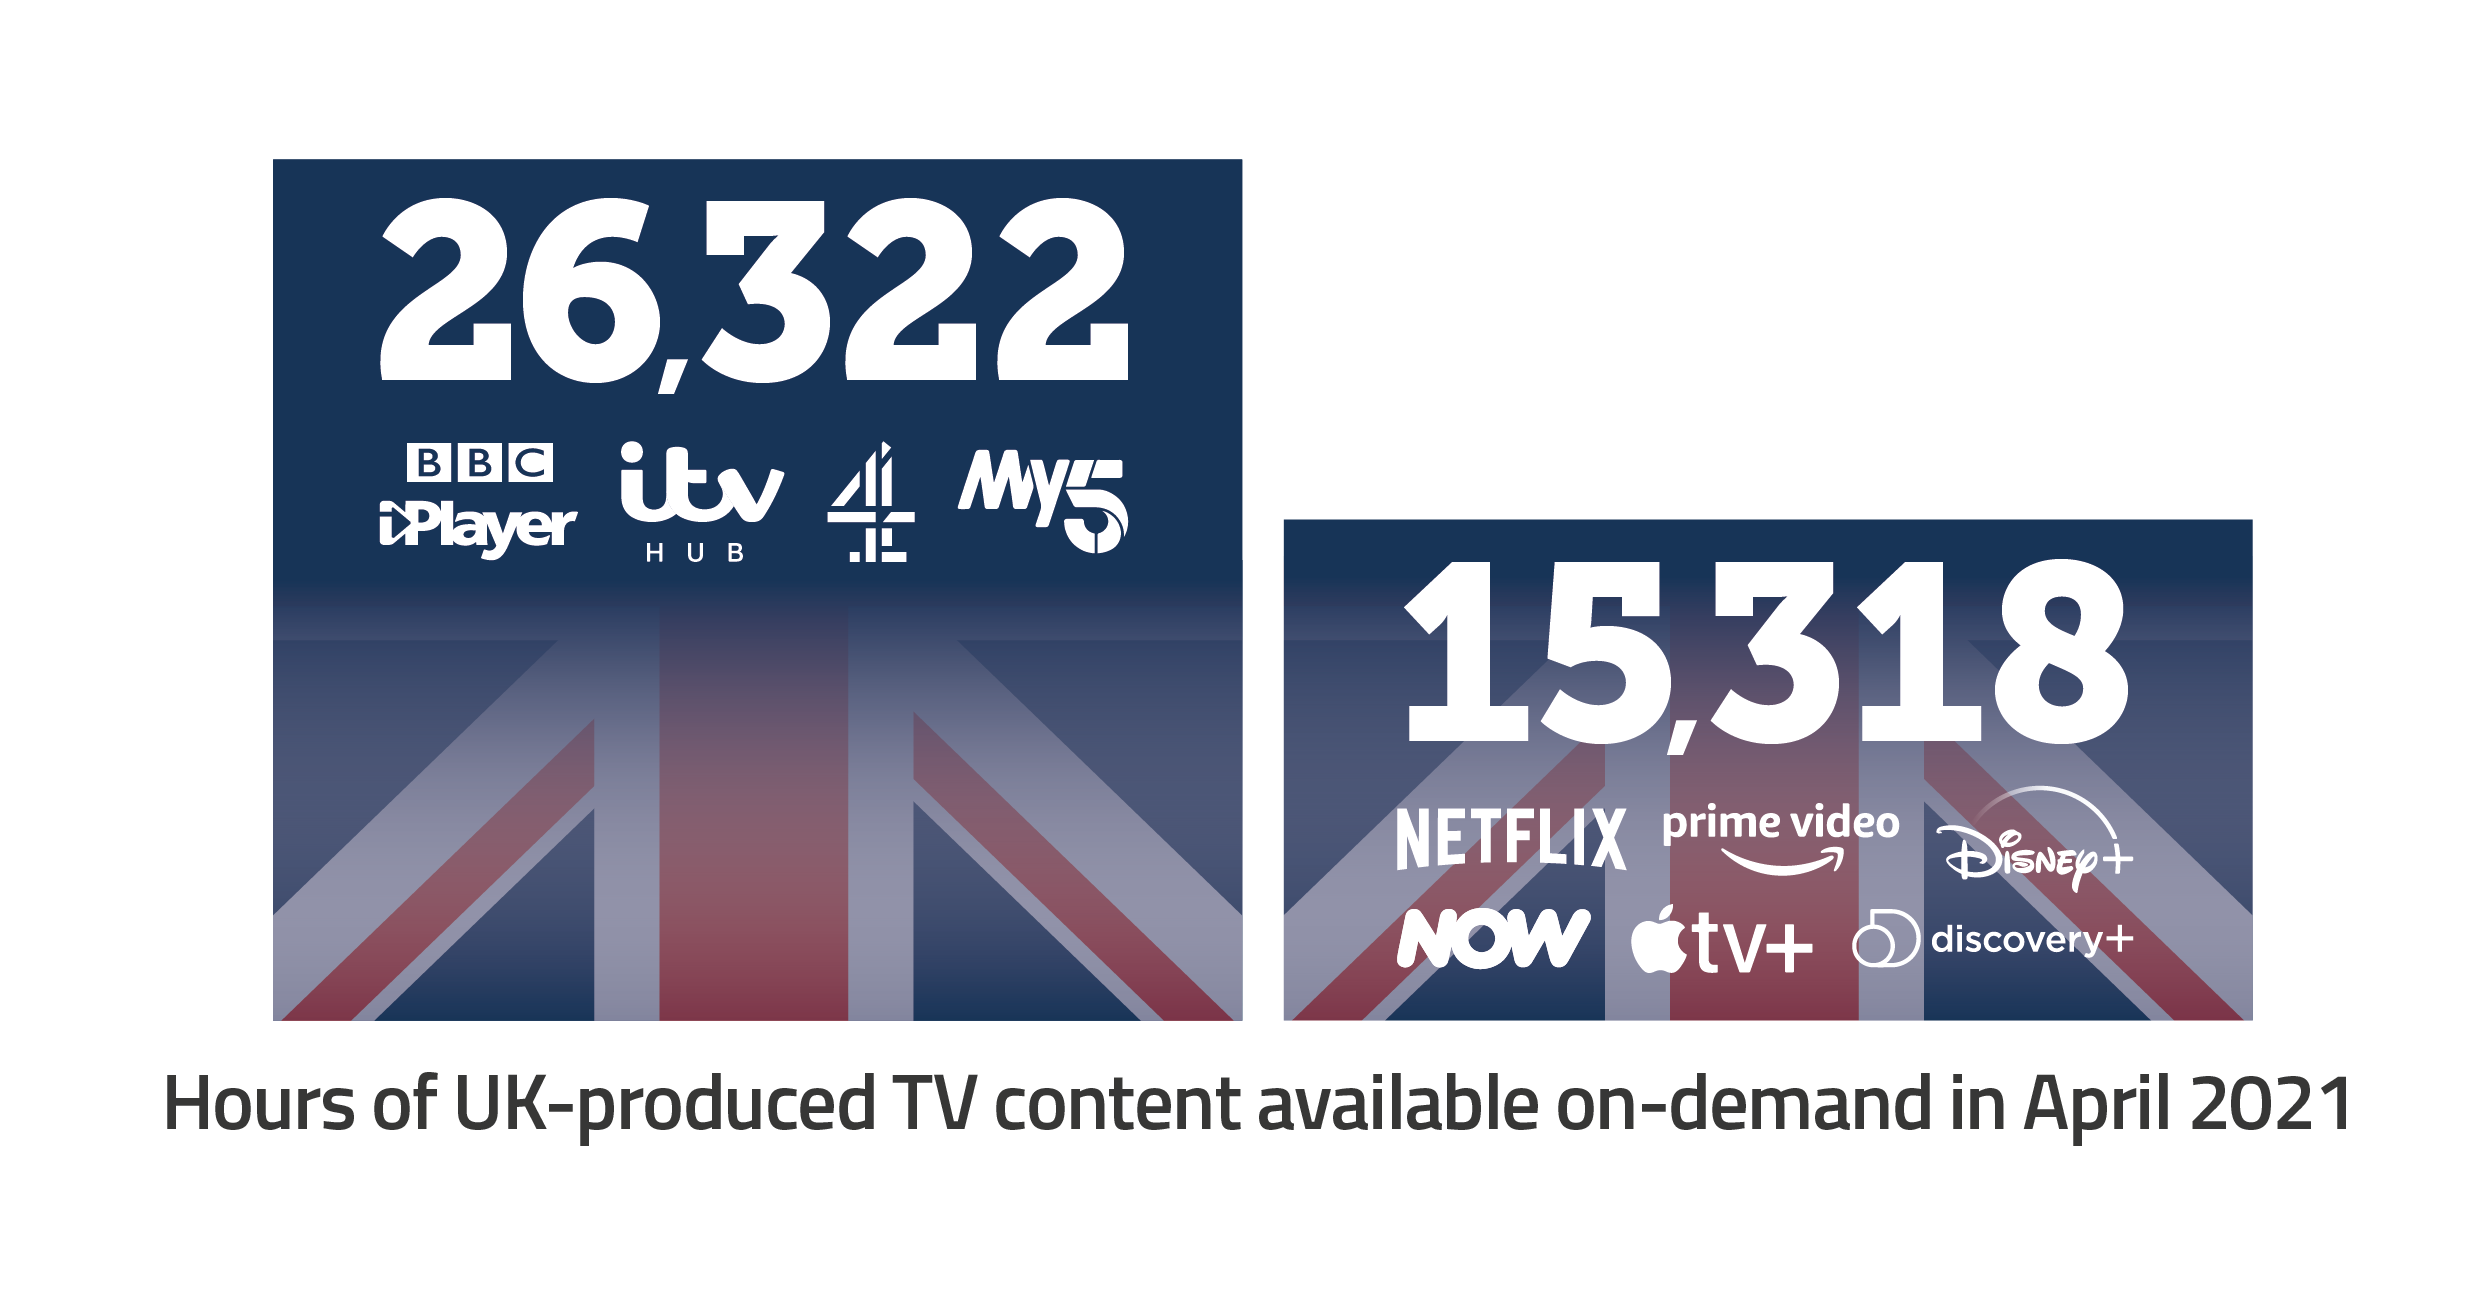 Hours of UK produced TV content available on demand in April 2020. 26,322 on bbc iplayer, itv hub, channel 4 and my five. Followed by 15318 on Netflix, prime video, Disney plus, now, apple tv plus and Discovery plus.